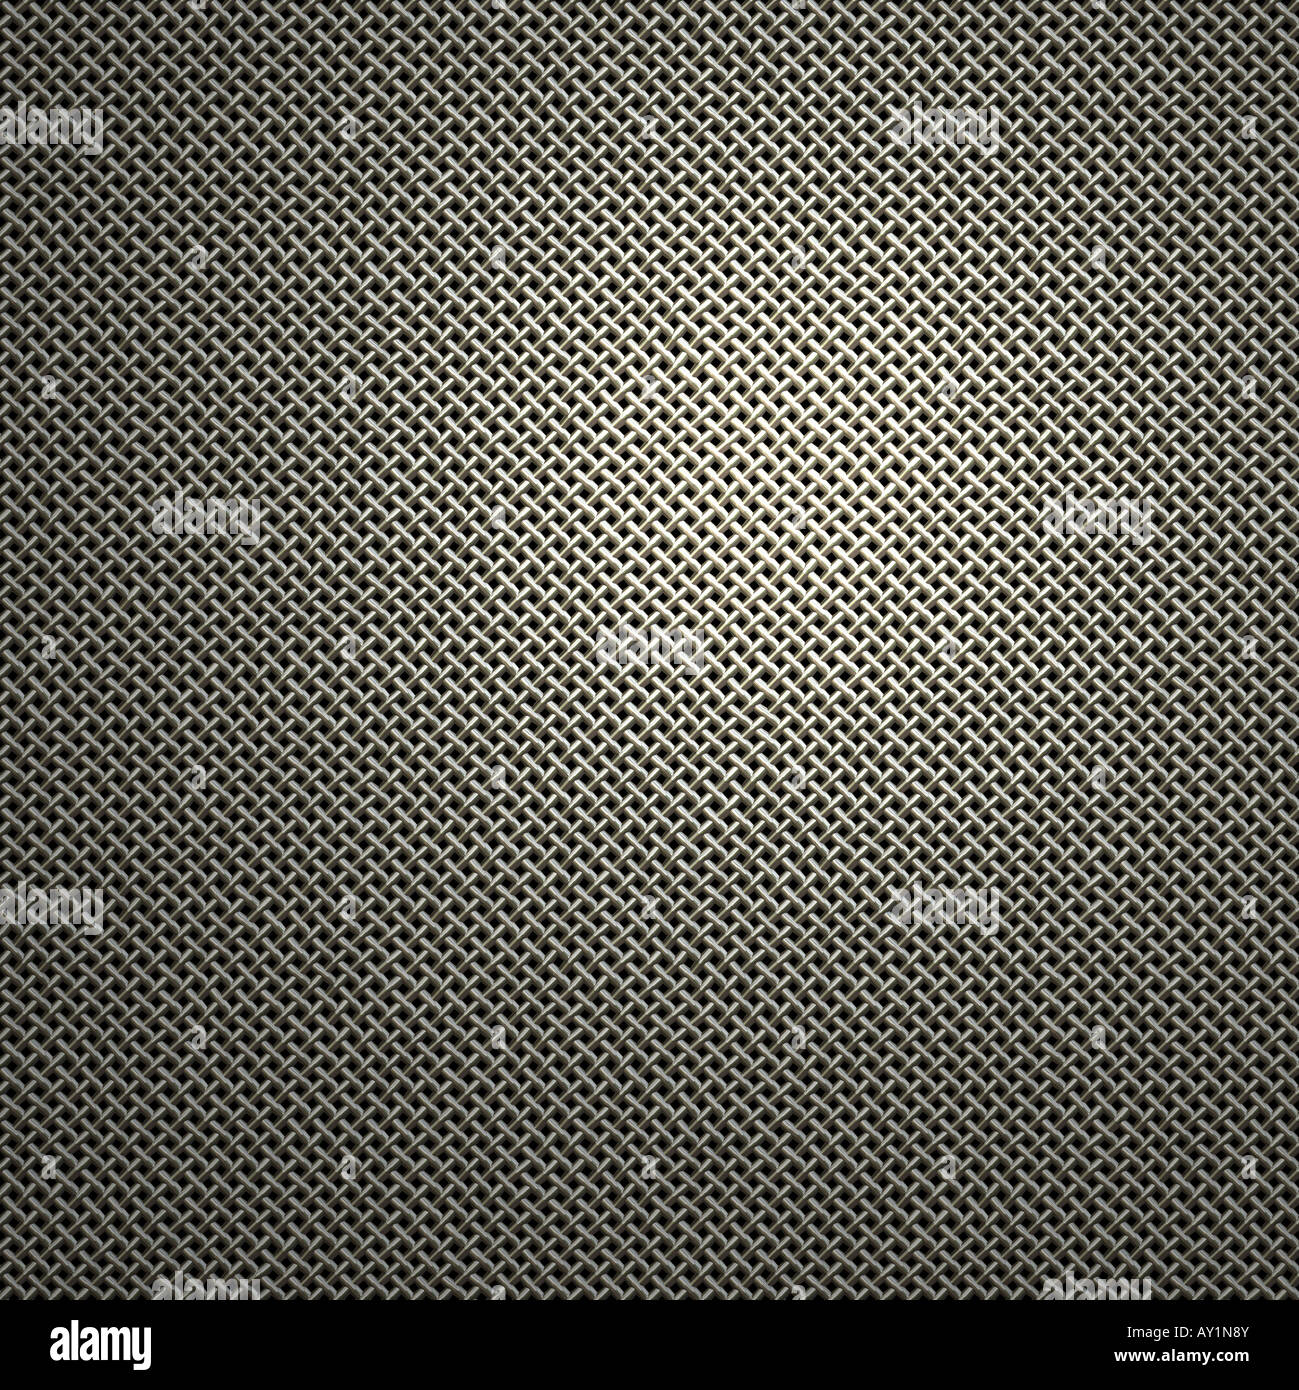 seamless background image of woven wire mesh - Stock Image